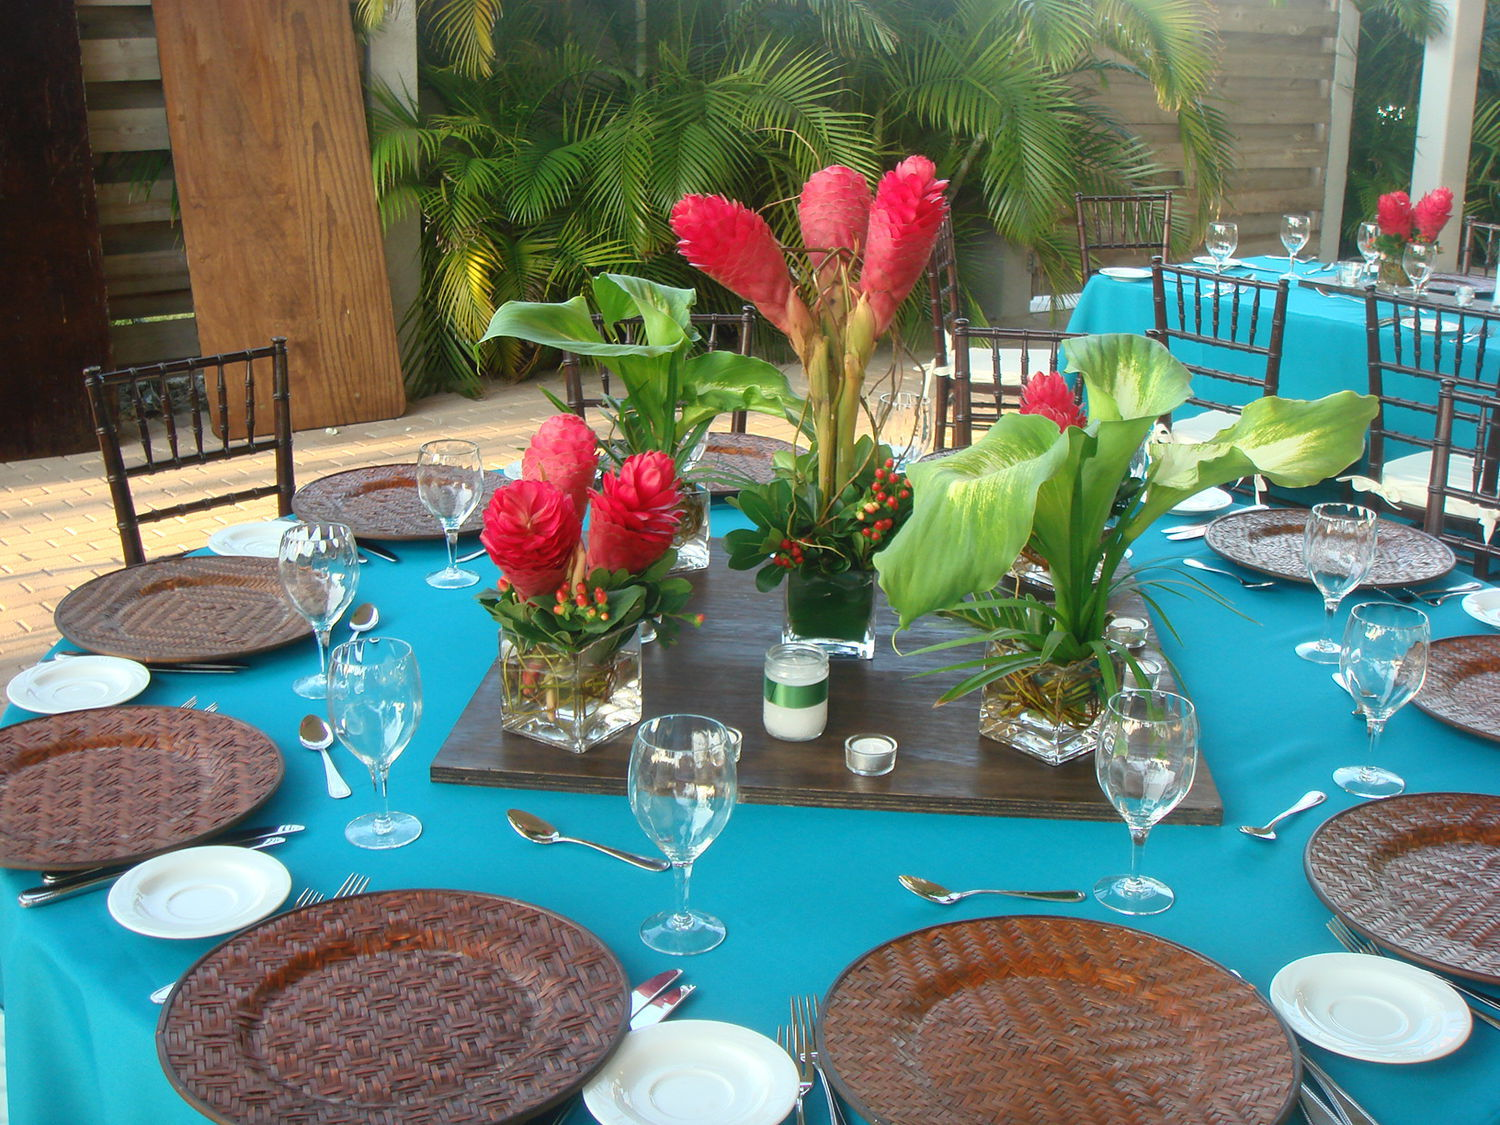 Caribbean Theme Party Ideas On Pinterest: Reception Centerpieces